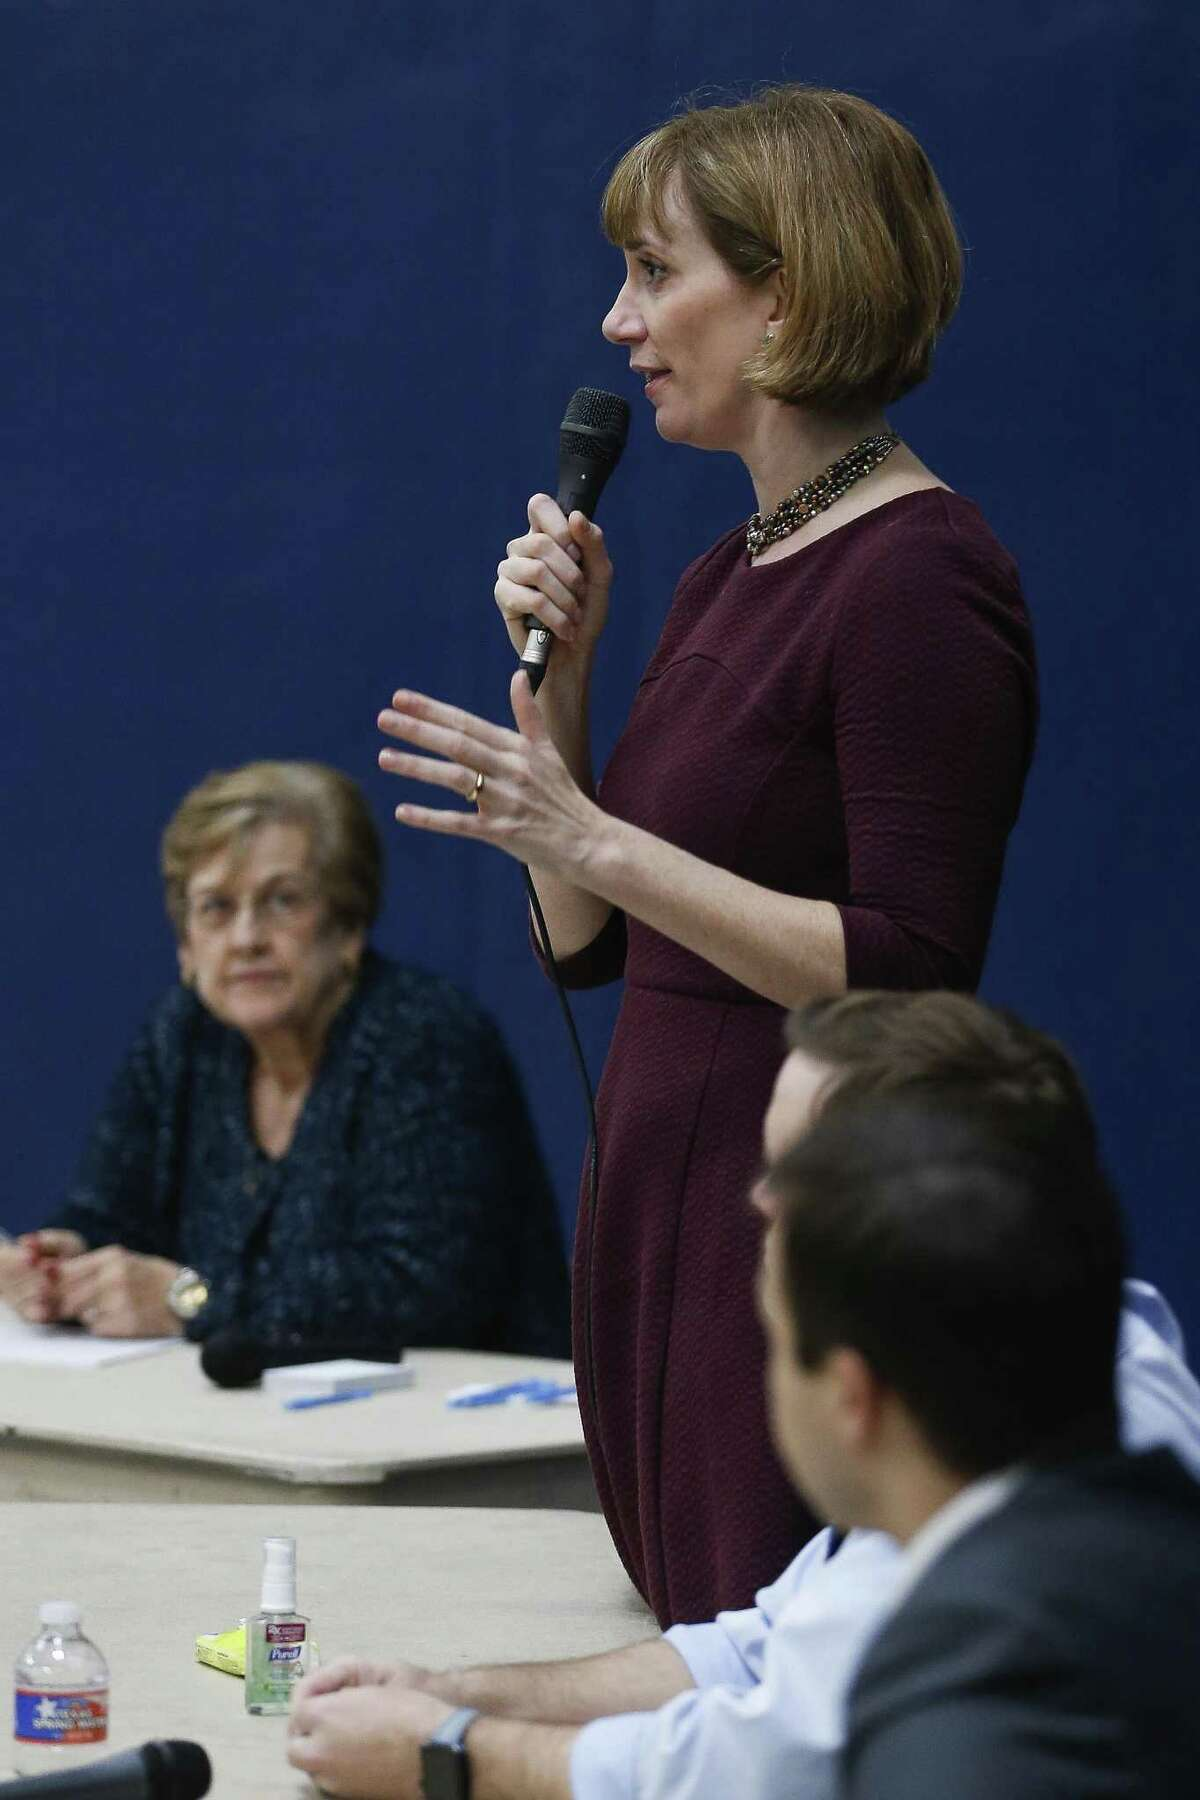 Congressional candidate Laura Moser answers a question as democrats vying to take on congressman John Culberson speak to voters at a Bayou Blue Democrats candidate forum at St. Stephens Episcopal Church Wednesday, Feb. 7, 2018 in Houston. (Michael Ciaglo / Houston Chronicle)